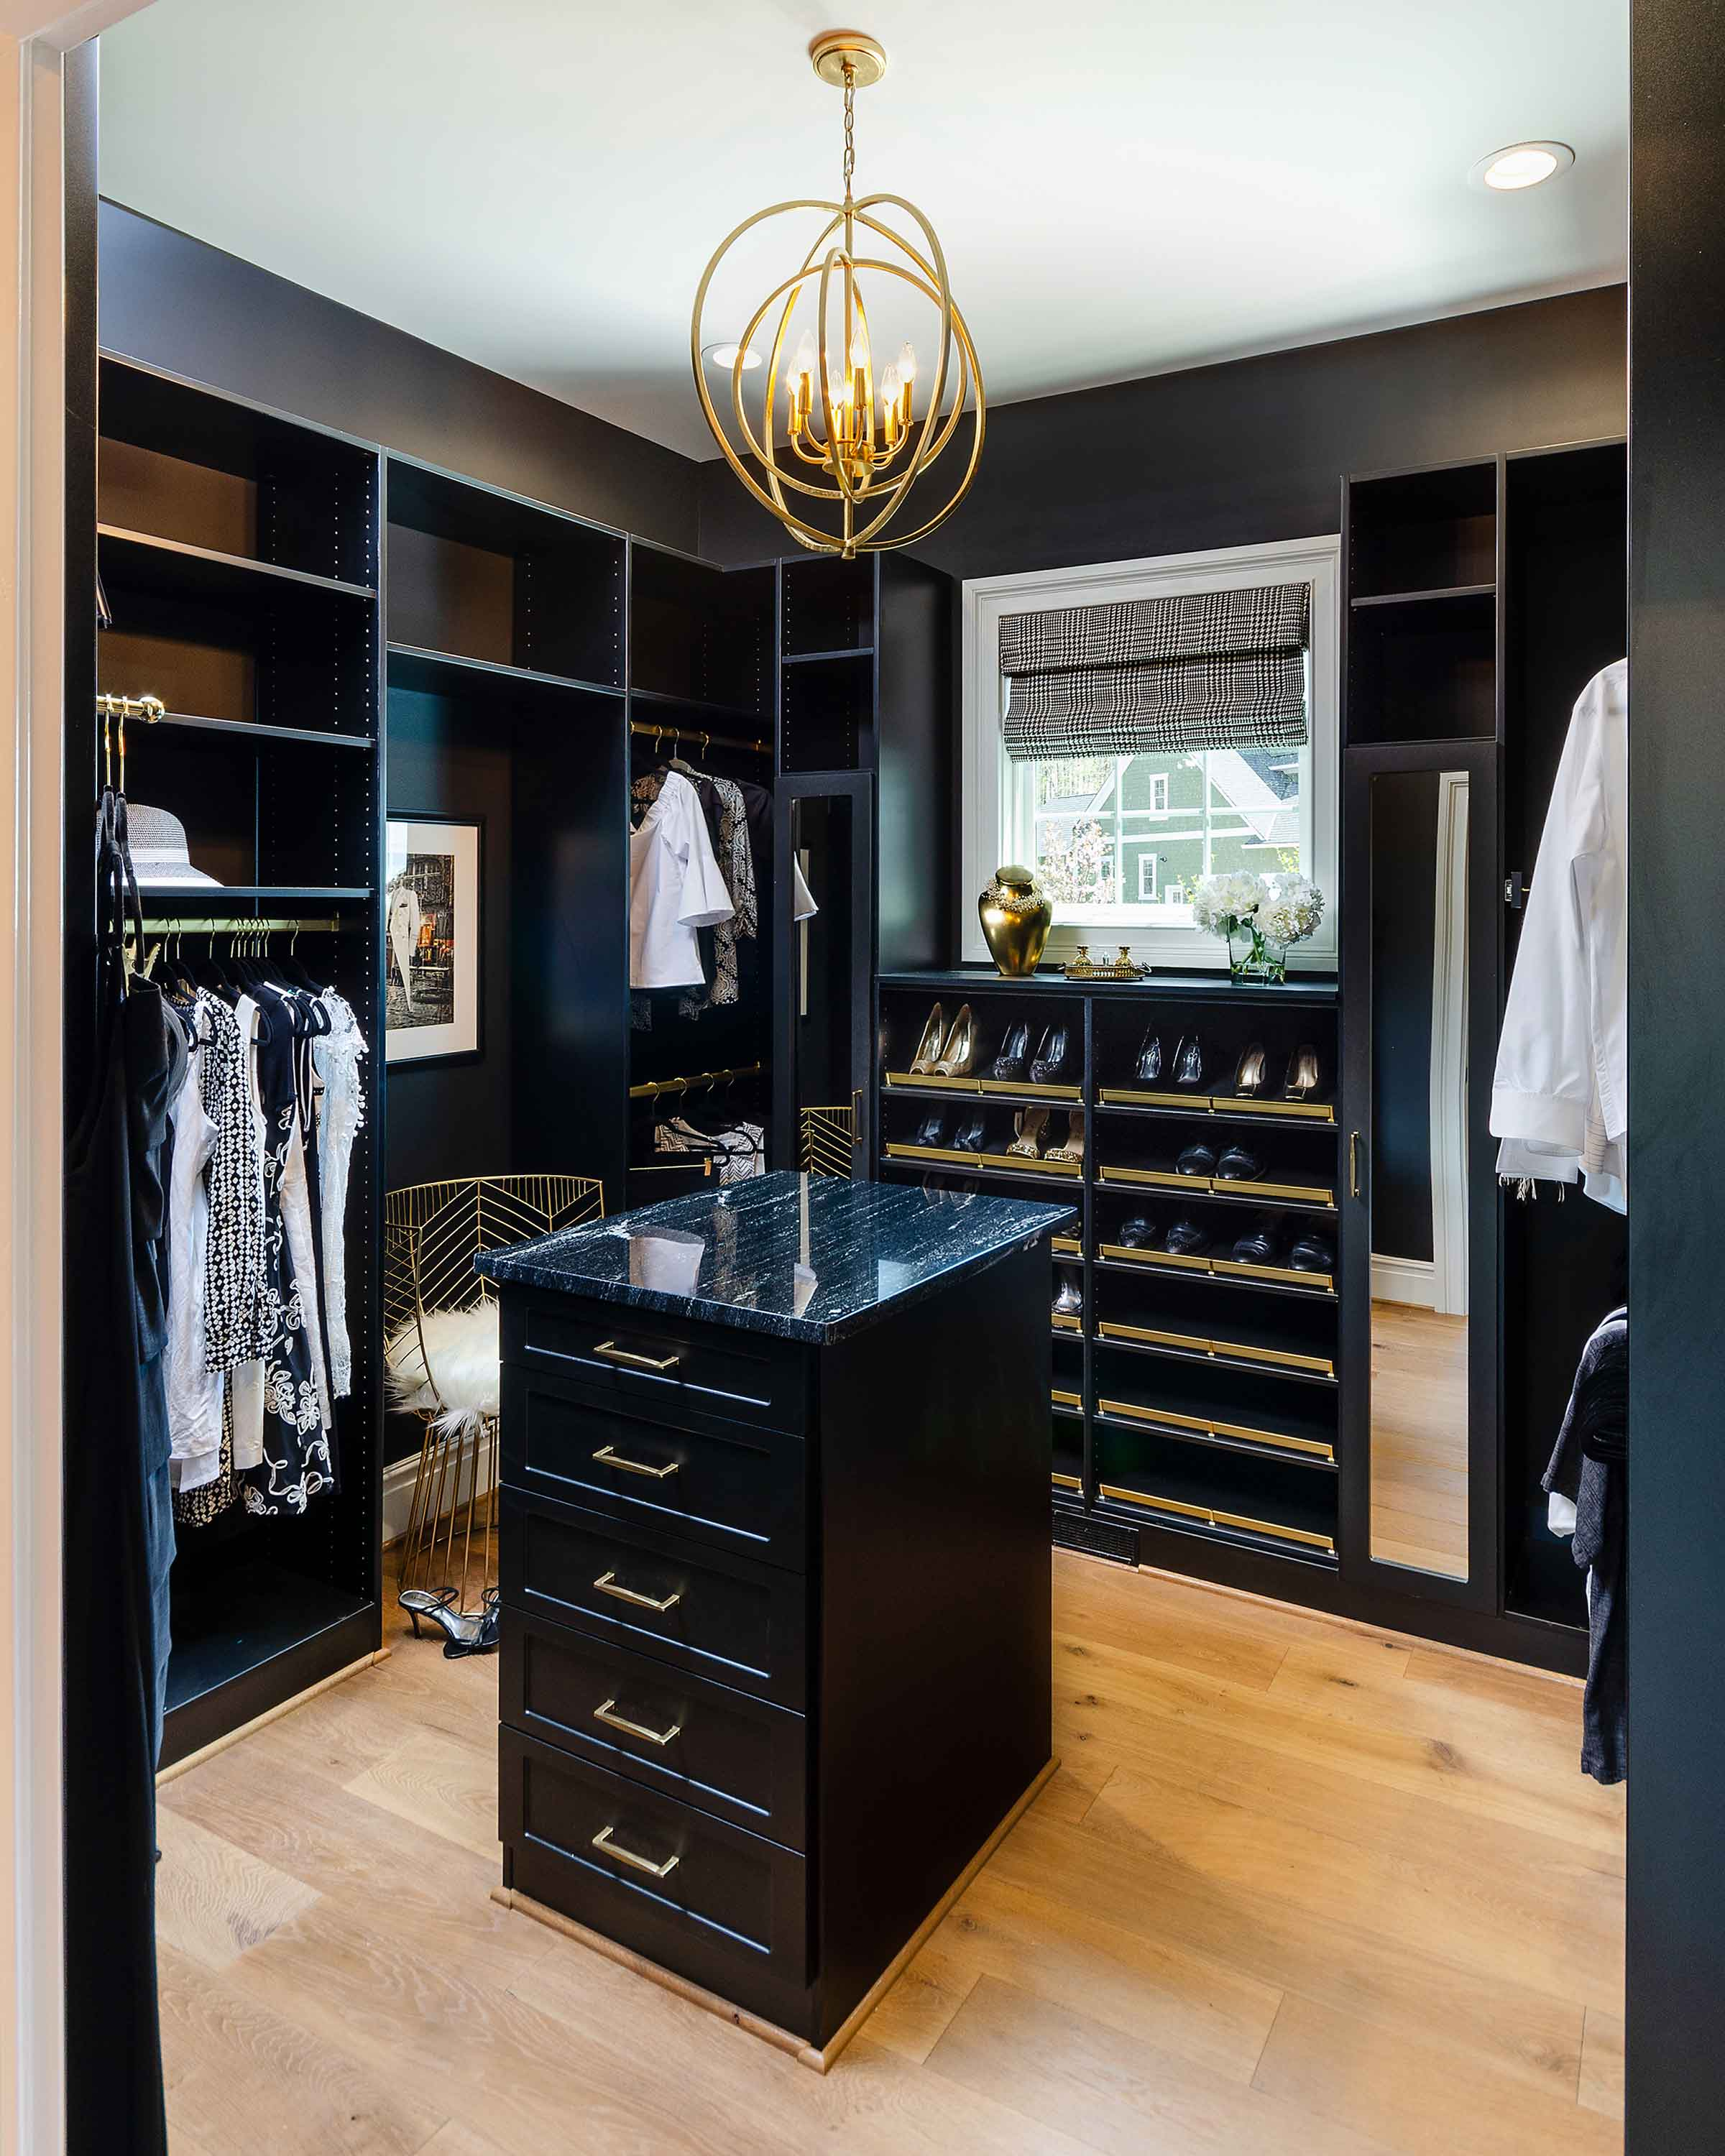 Black Closet System For Walk In Closet With An Island.